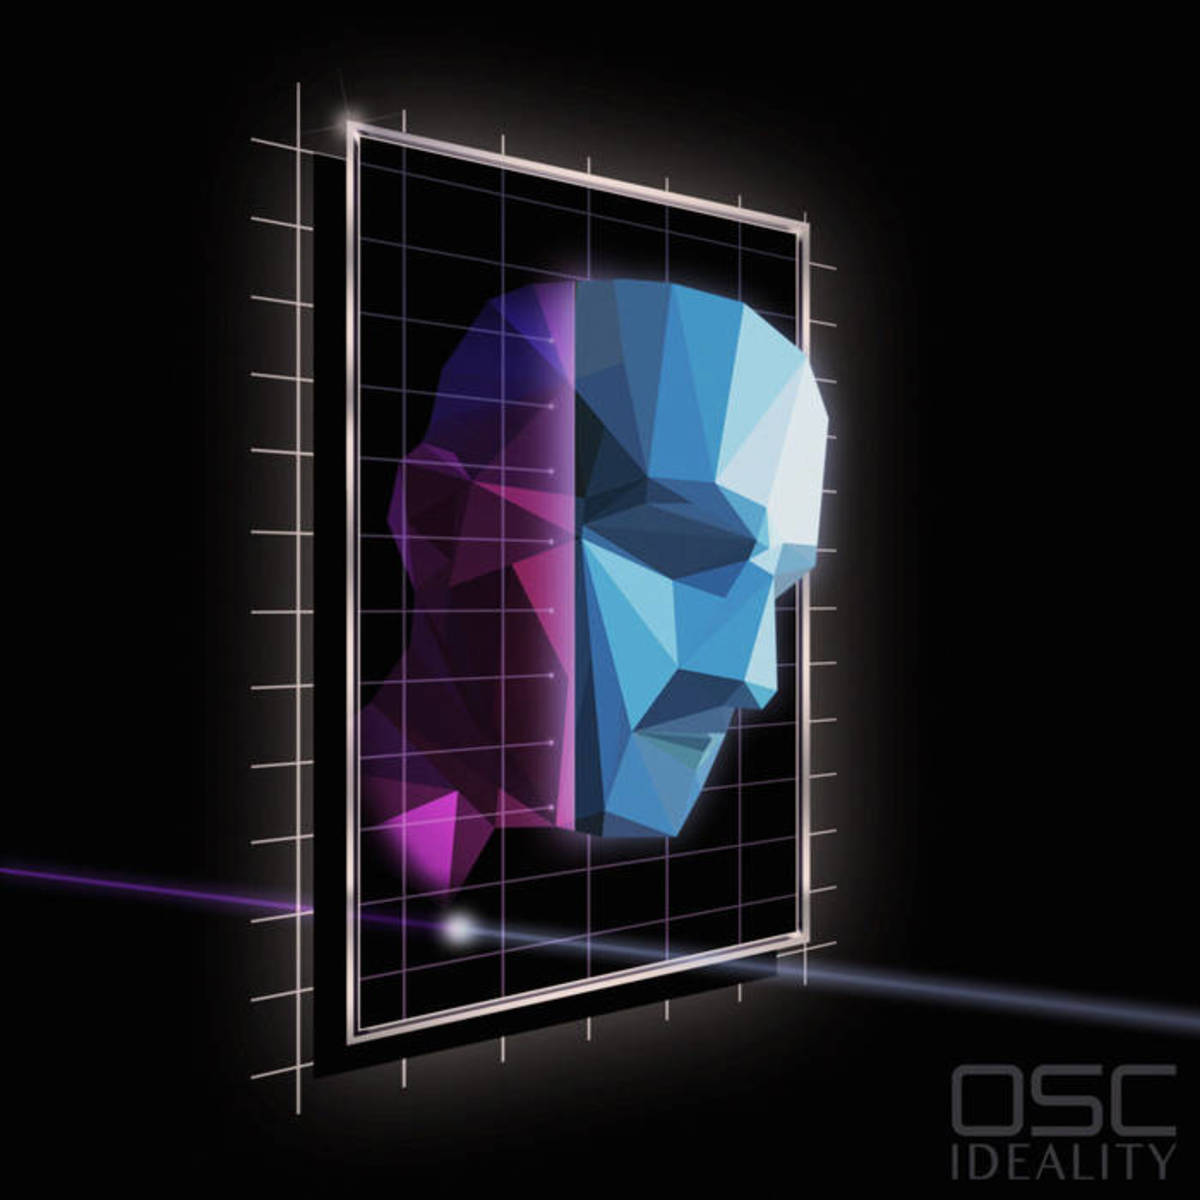 synth-album-review-osc-ideality